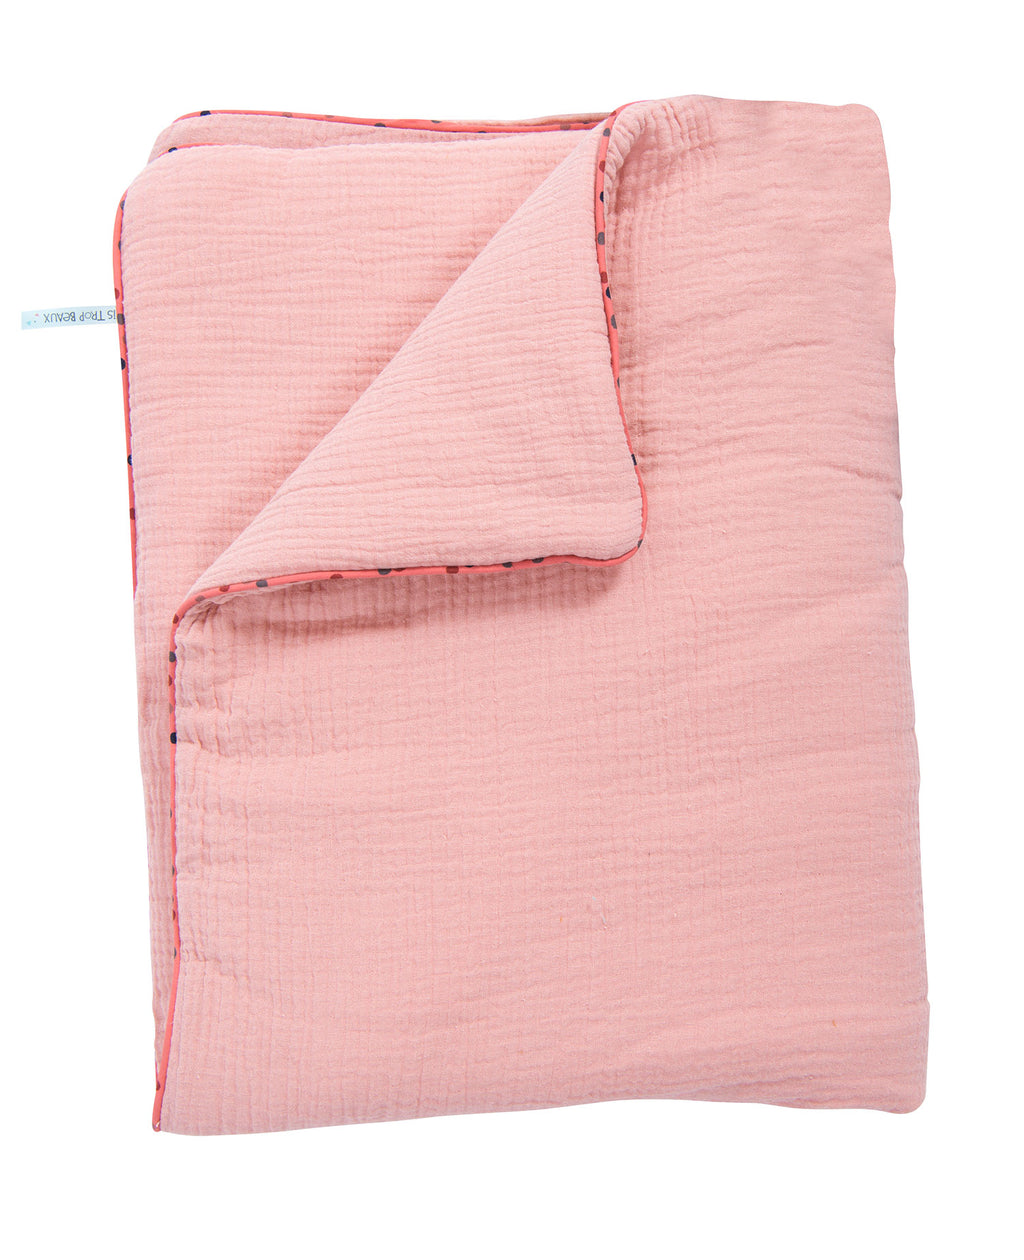 Moulin Roty | 100% Cotton Blanket | Pink | Size: 90cm x 70 cm